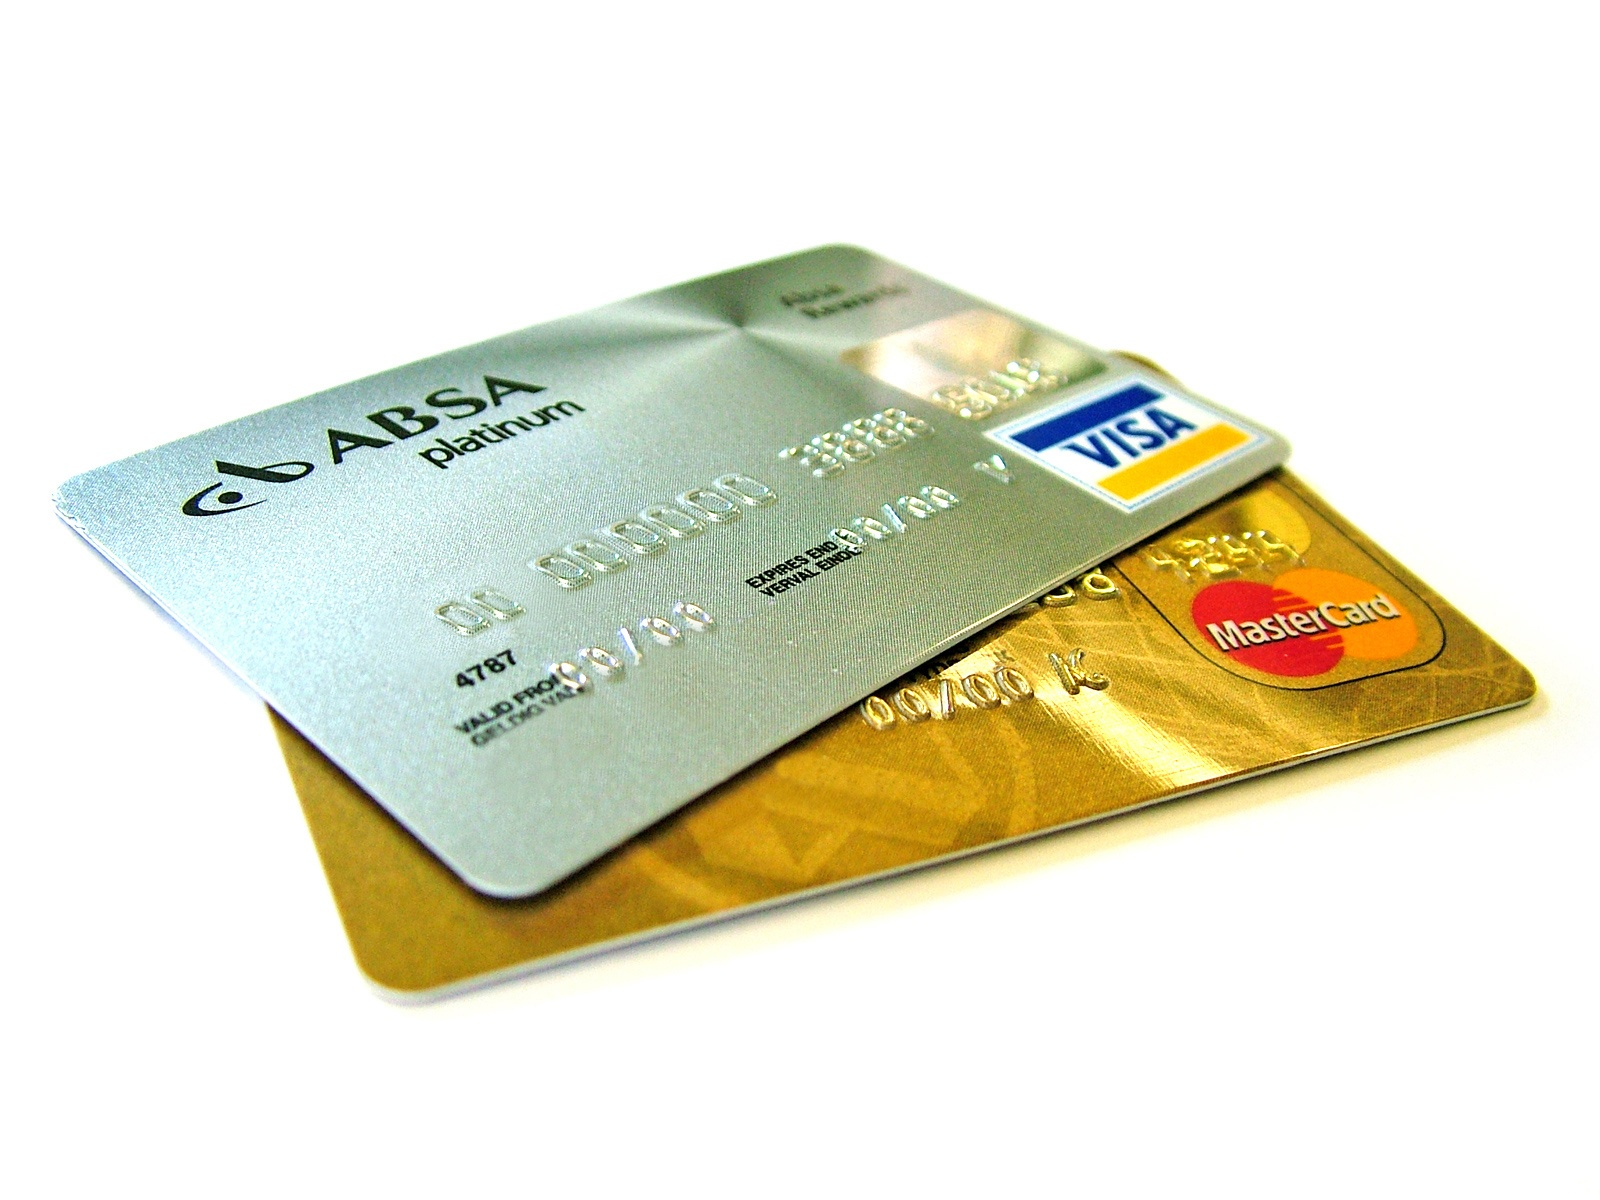 Costa rica credit cards charge up to 54 centralamericadata a meic study found that credit card issuers charge interest rates between 20 and 54 colourmoves